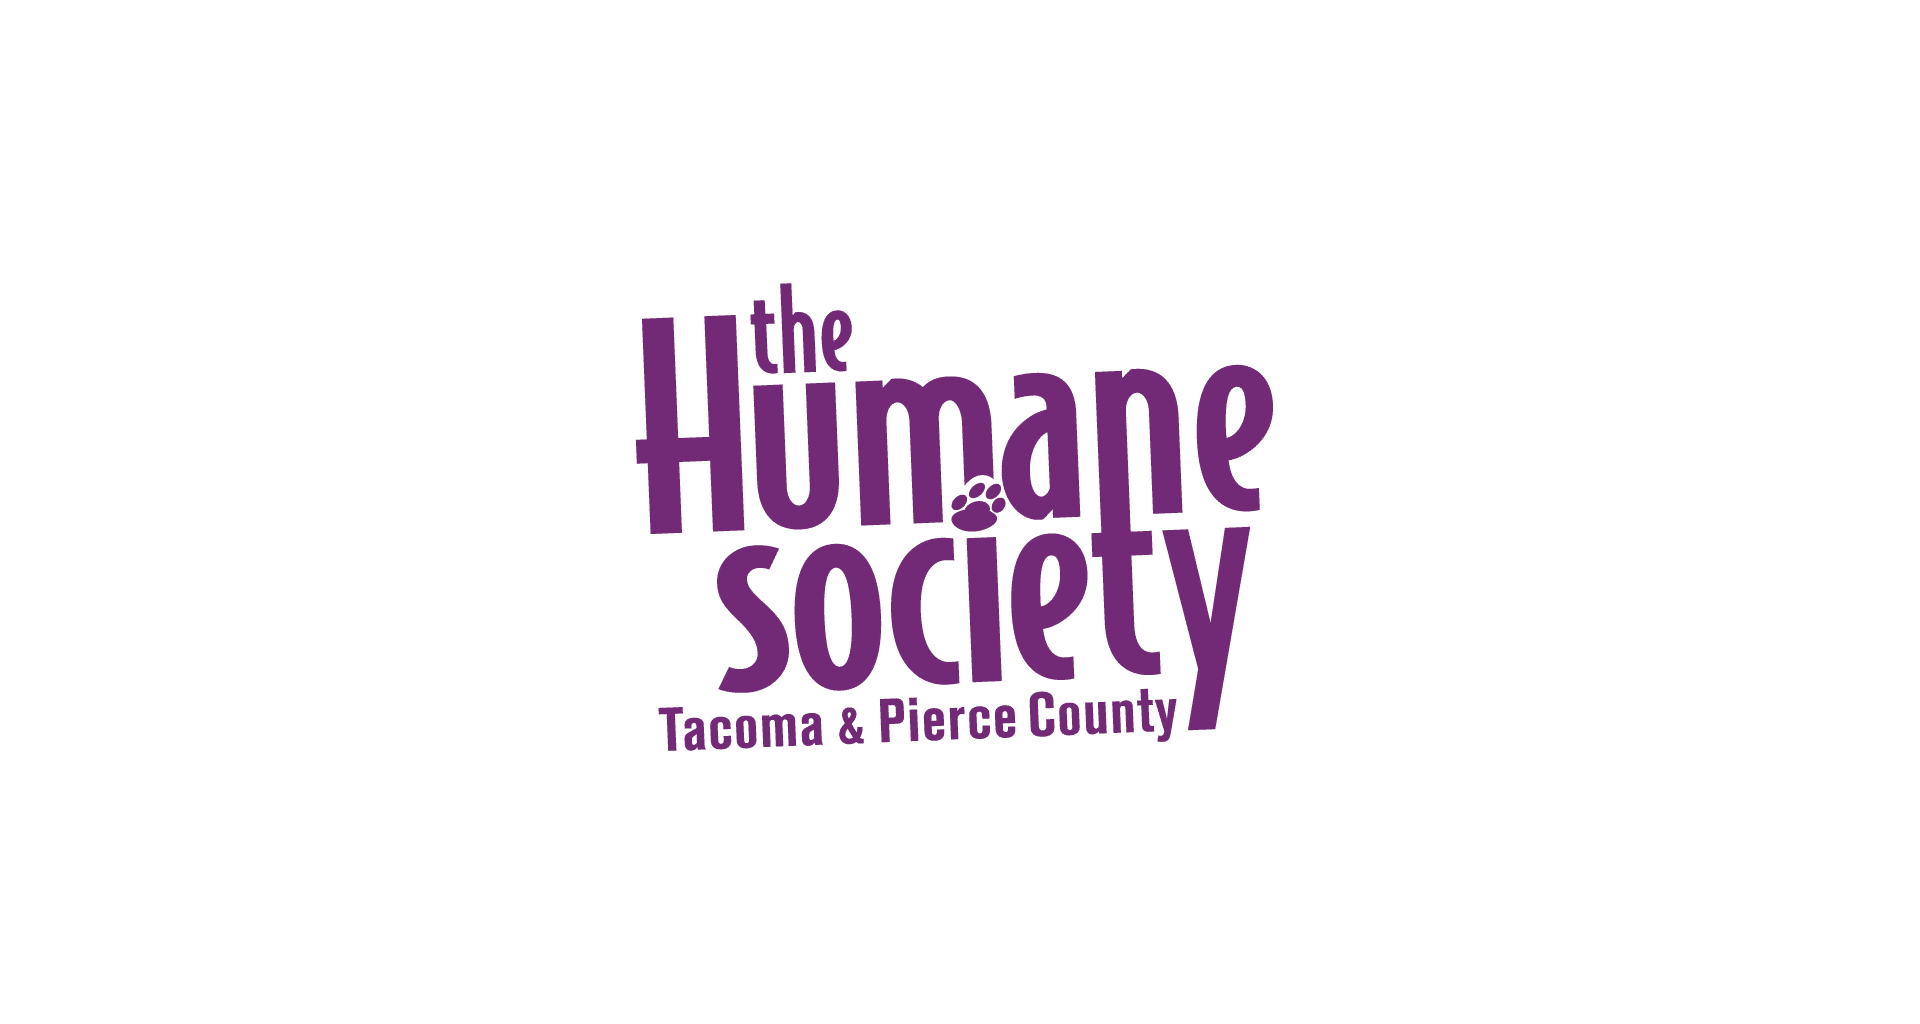 The Humane Society of Tacoma